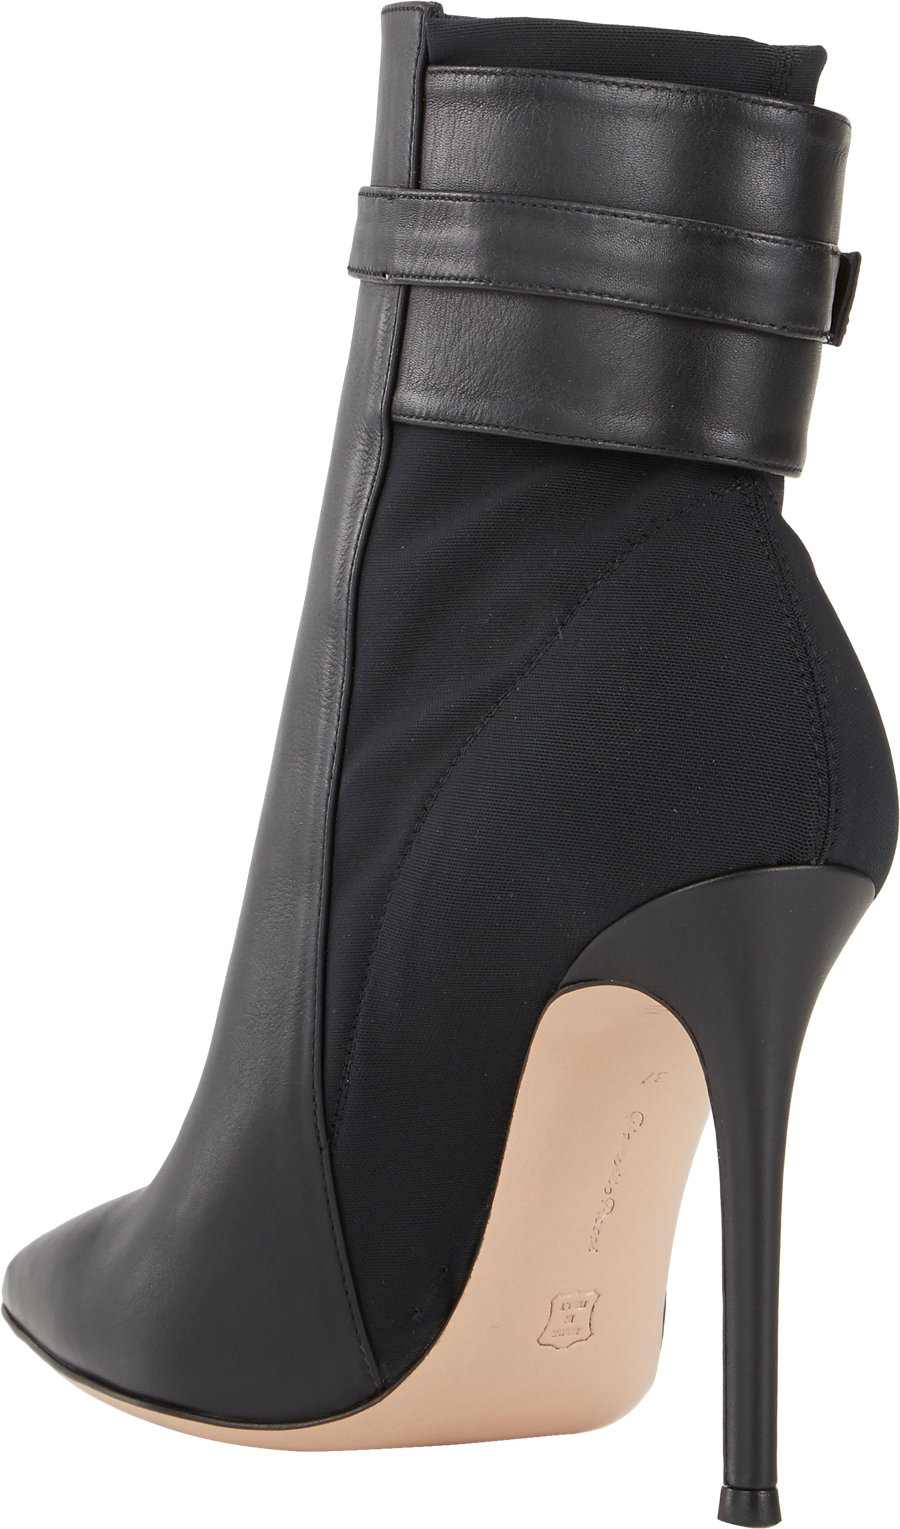 gianvito ankle cuff boots in black lyst